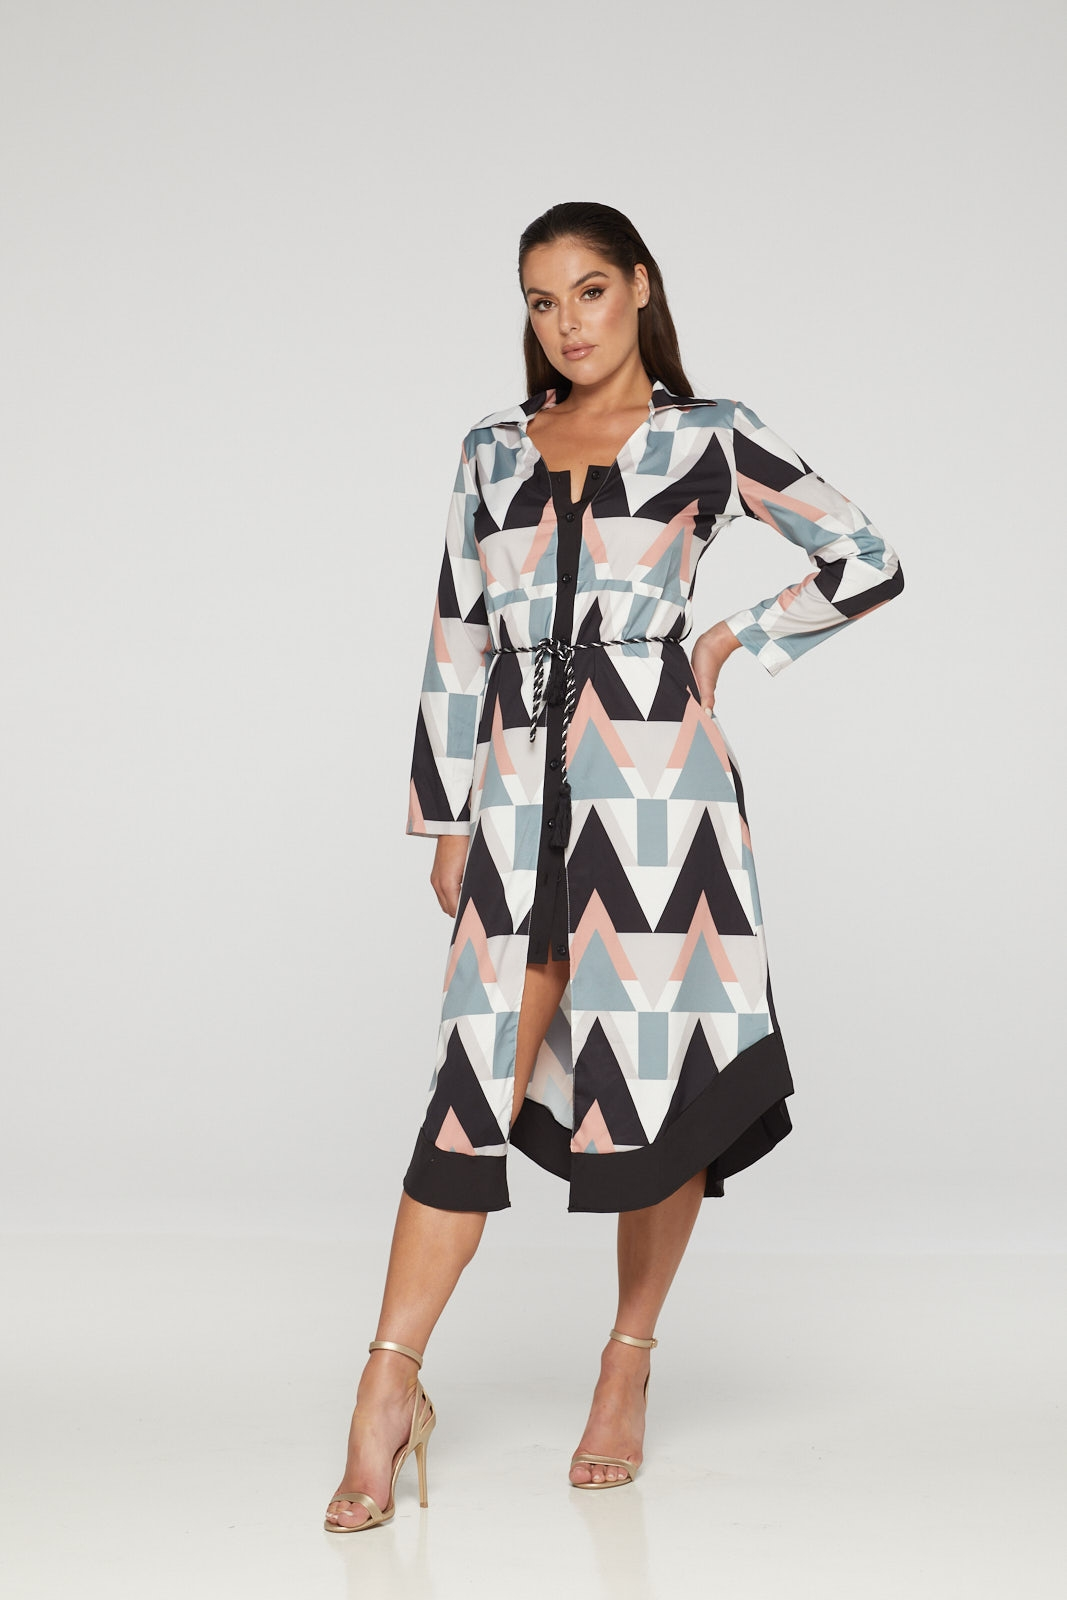 REG31 Multi-Coloured Front Buttoned Summer Dress